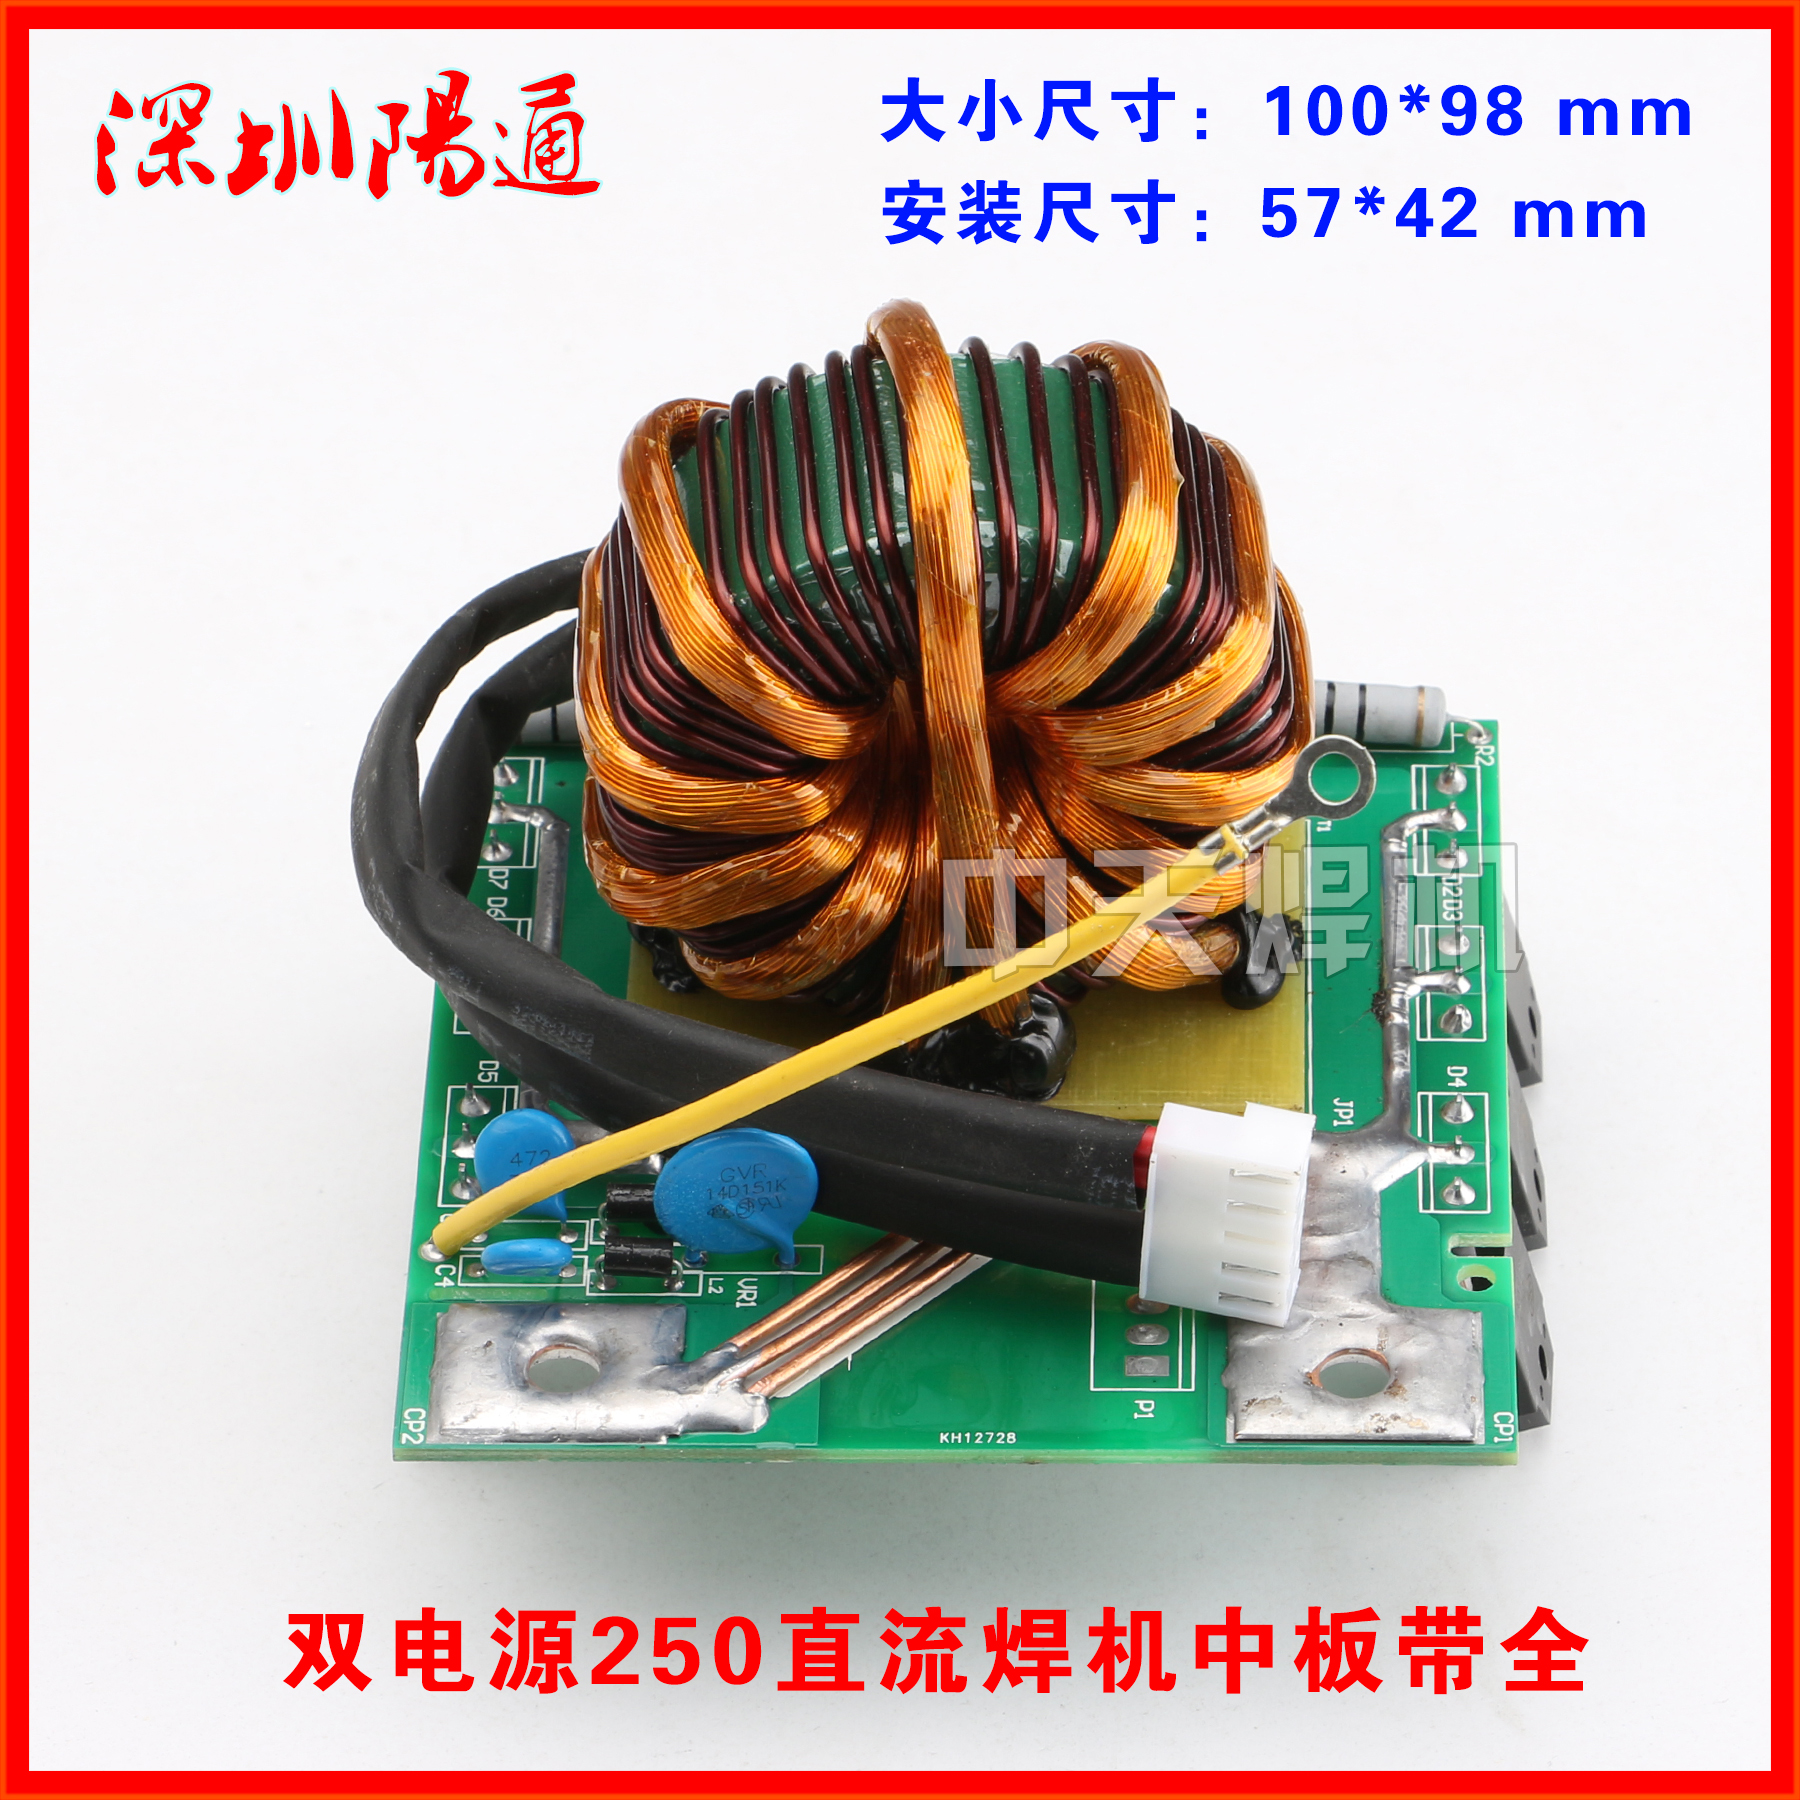 Double Voltage ZX7-250S DC Welding Machine with Transformer Rectifier Tube Plate Circuit Board